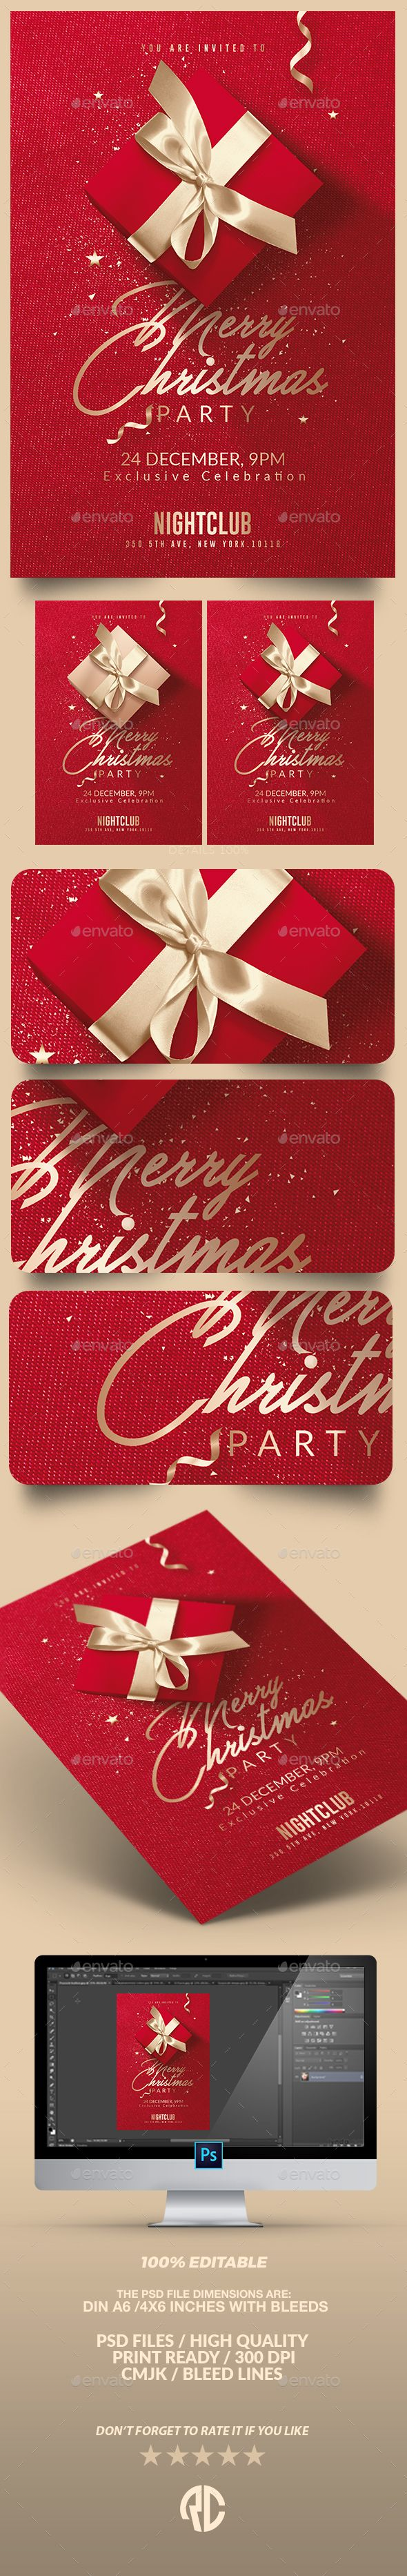 Red Christmas Party  Invitation Flyer Template  Print Templates